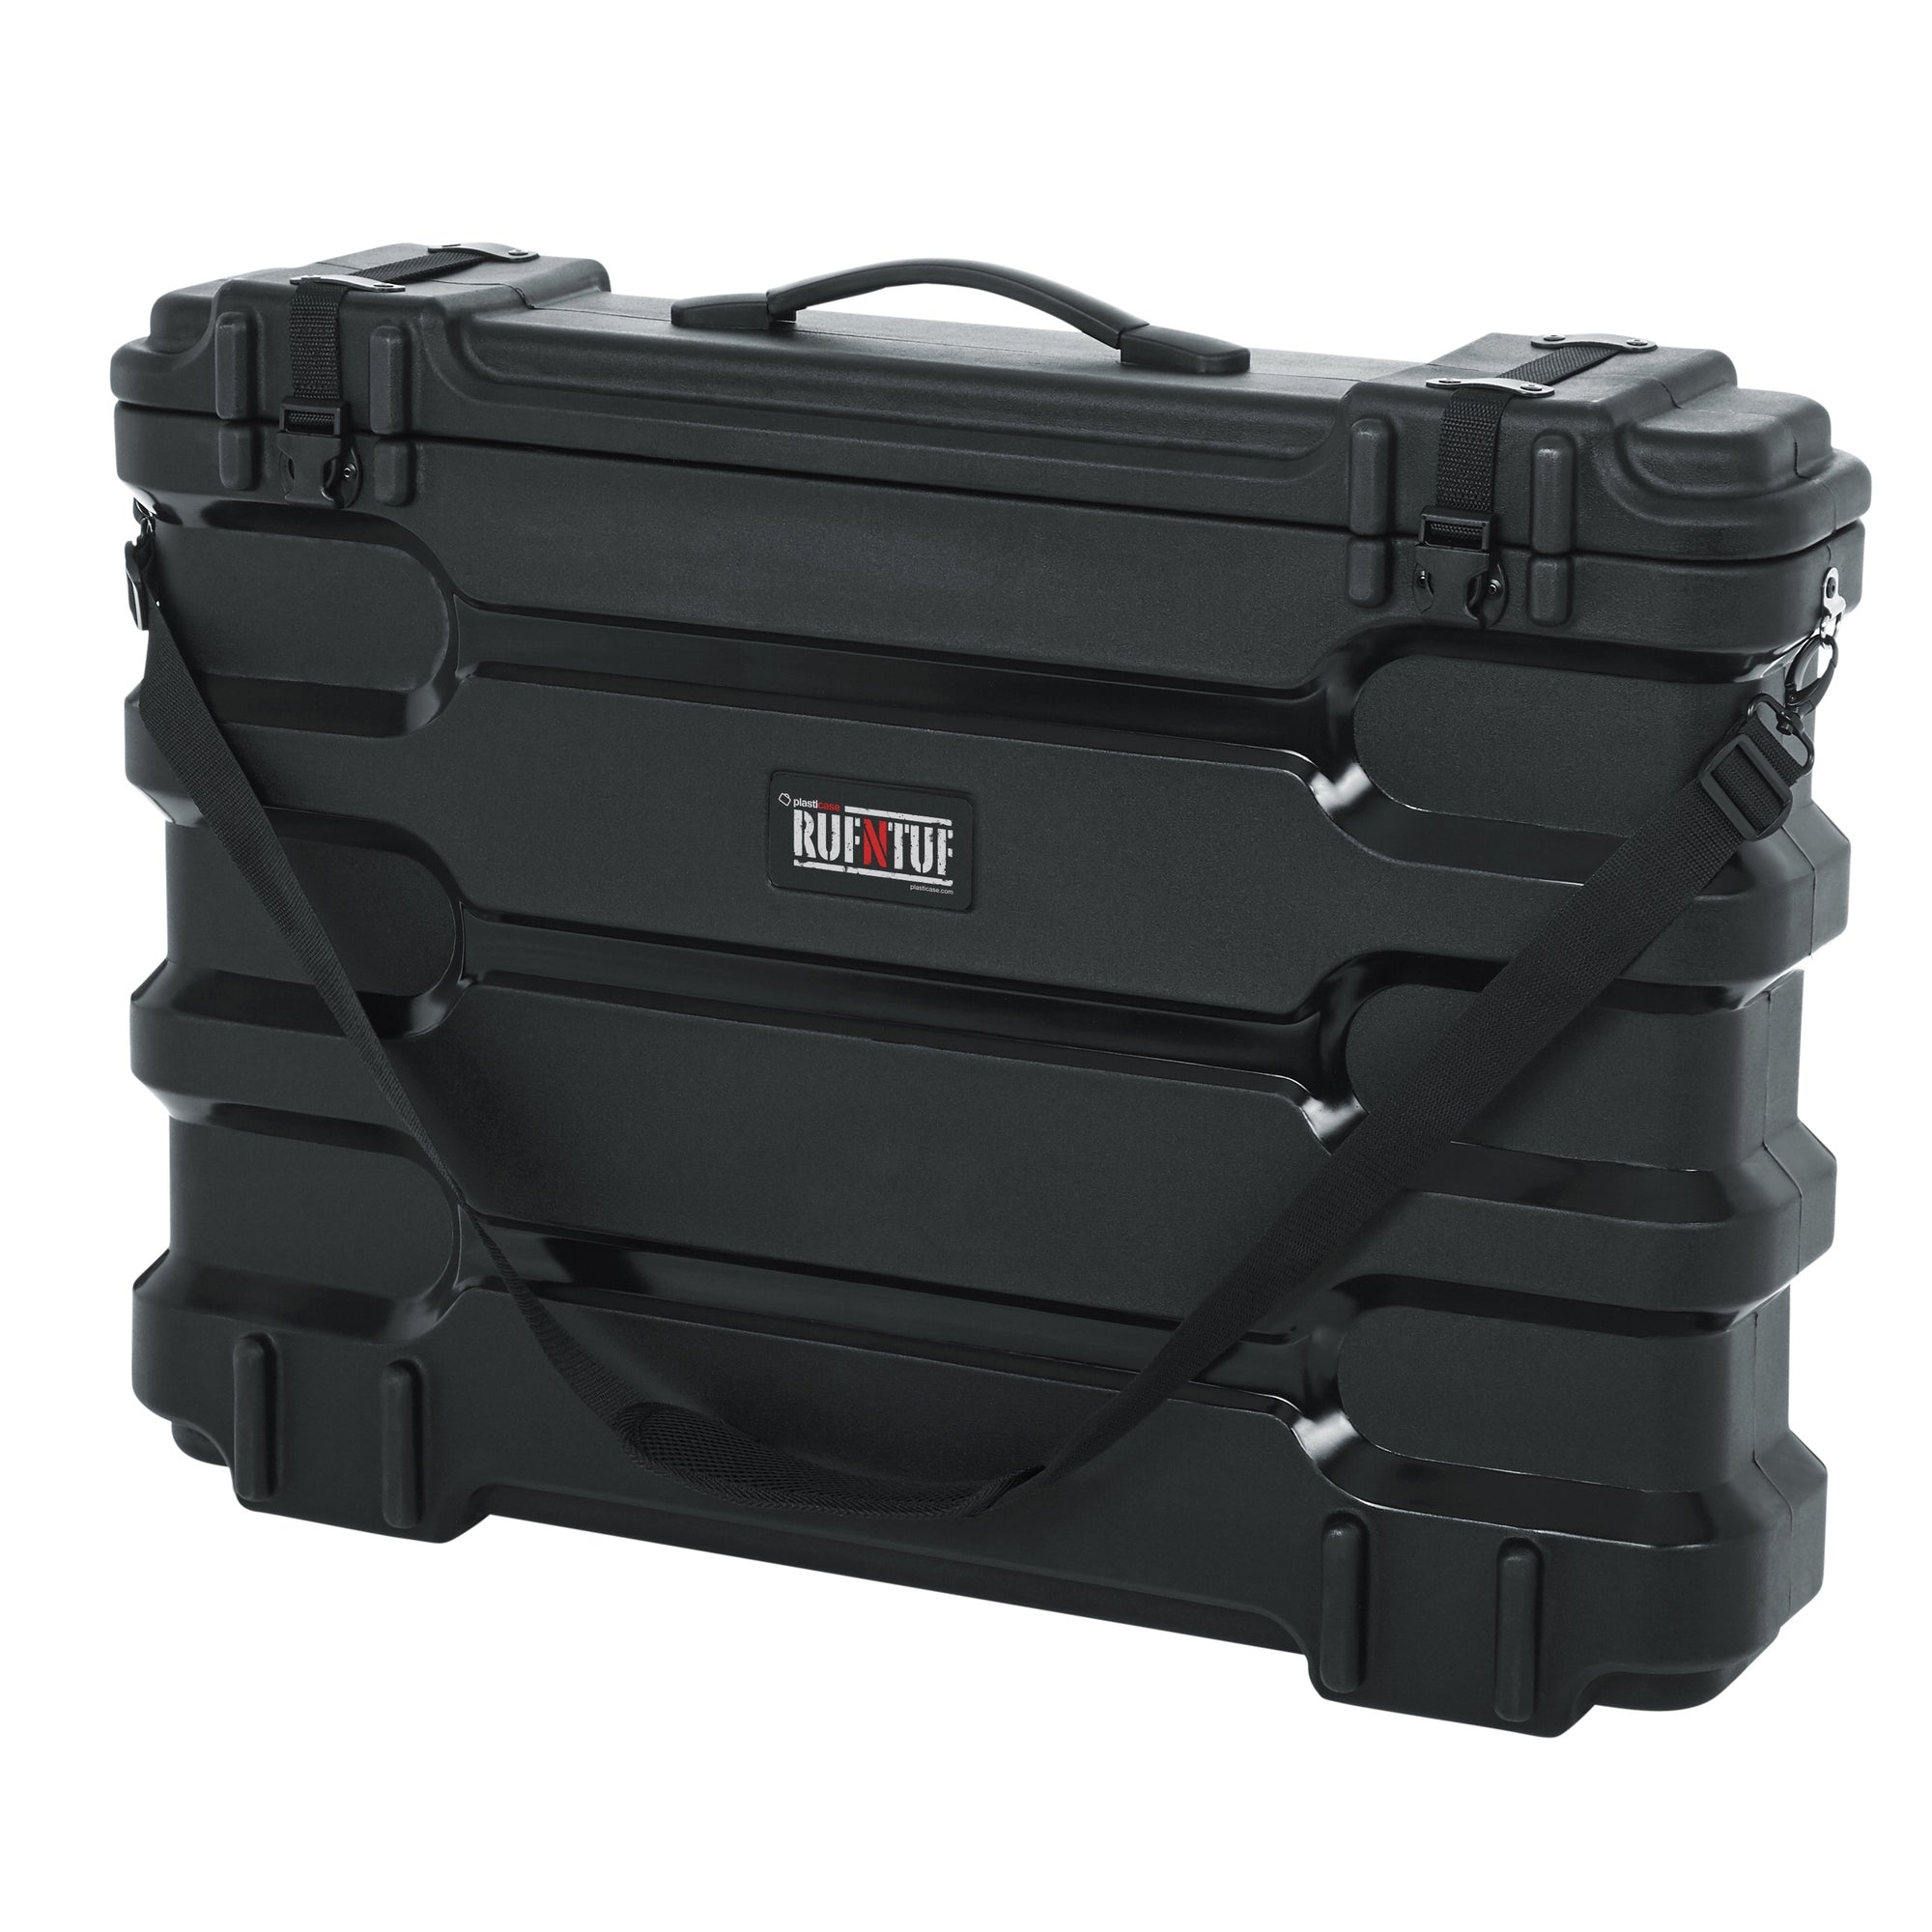 Dimensions of the RUF N TUF - 27-32″ Roto Mold LCD/LED Monitor Case Hard Case